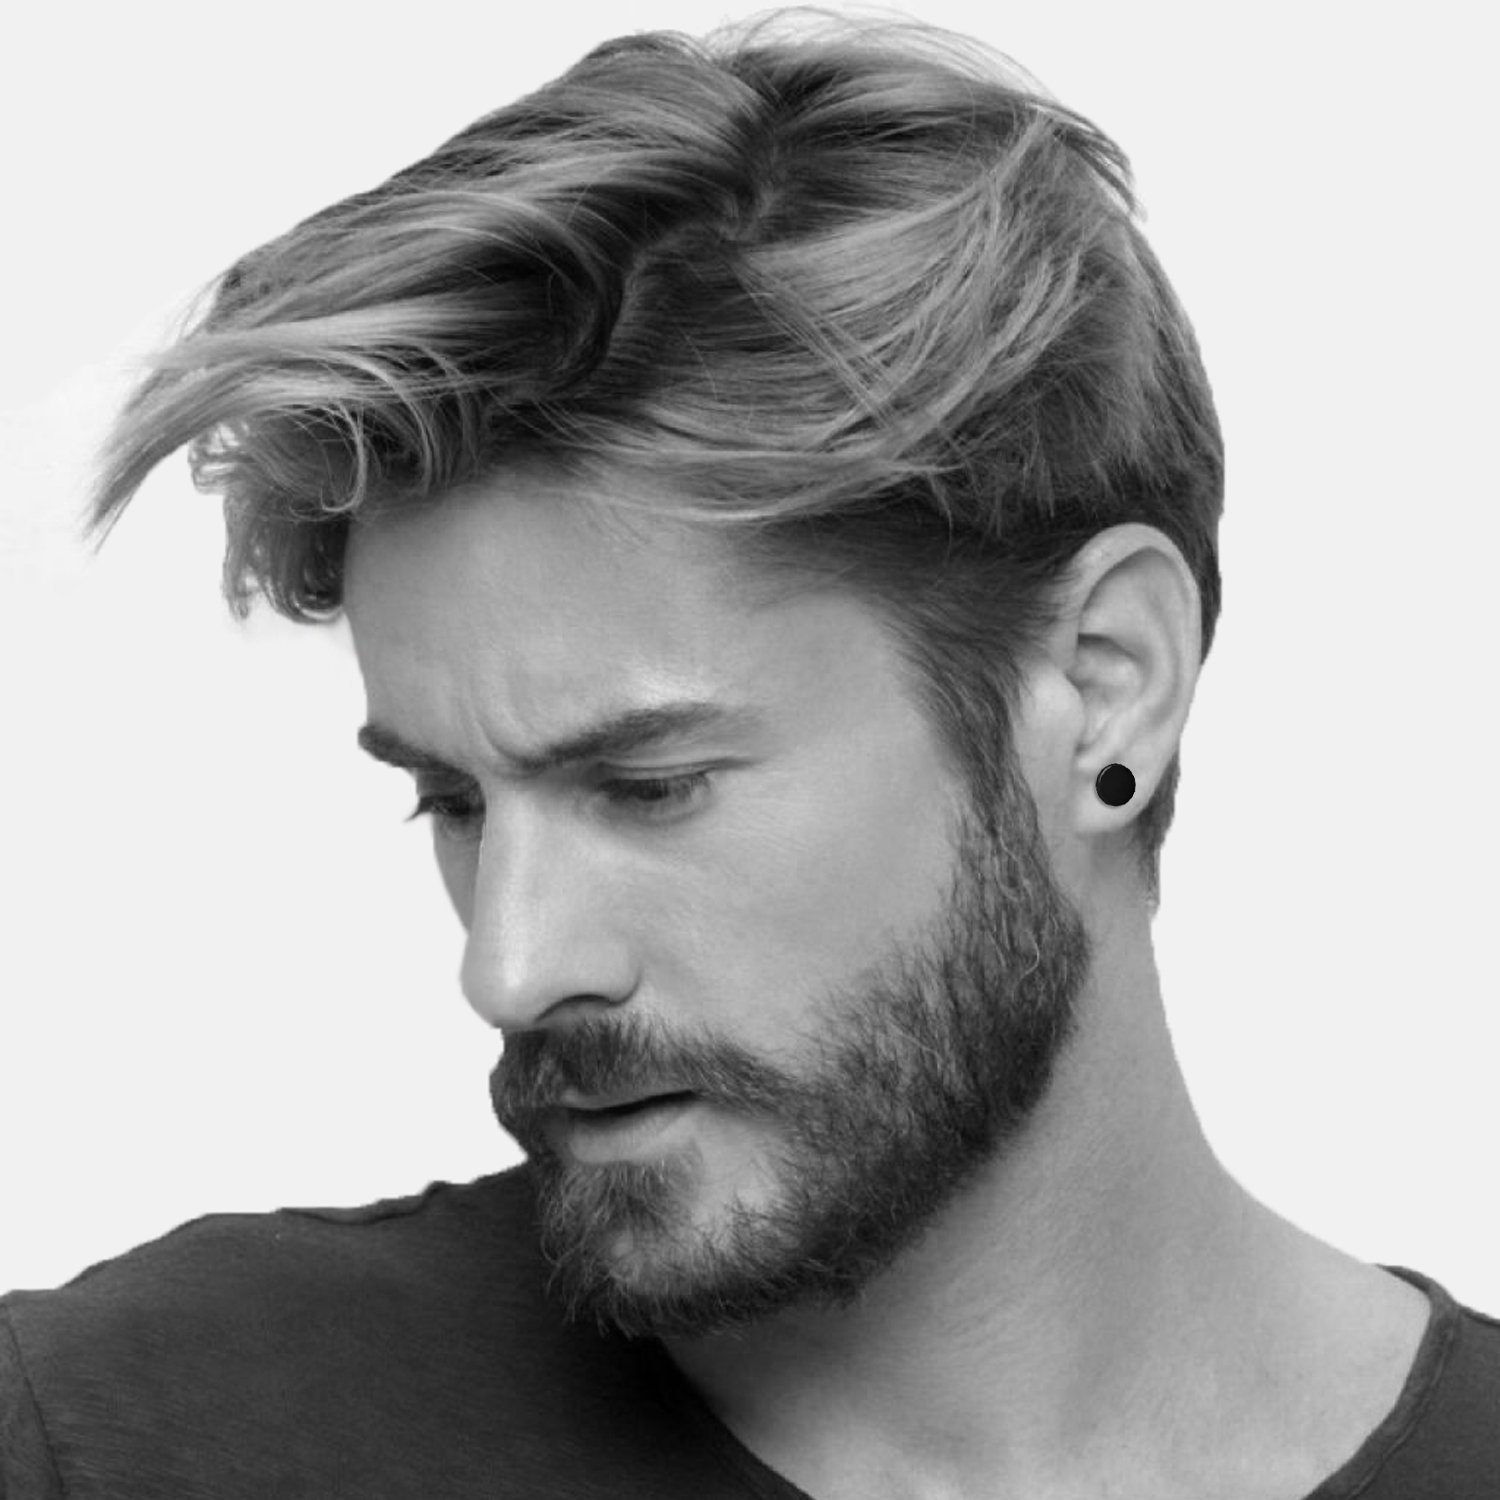 man inspirational face gorgeous longhairfordays replicamk hairstyle stud good dahlhaus this ben hairstyles hair has of i thick y for oblong men and